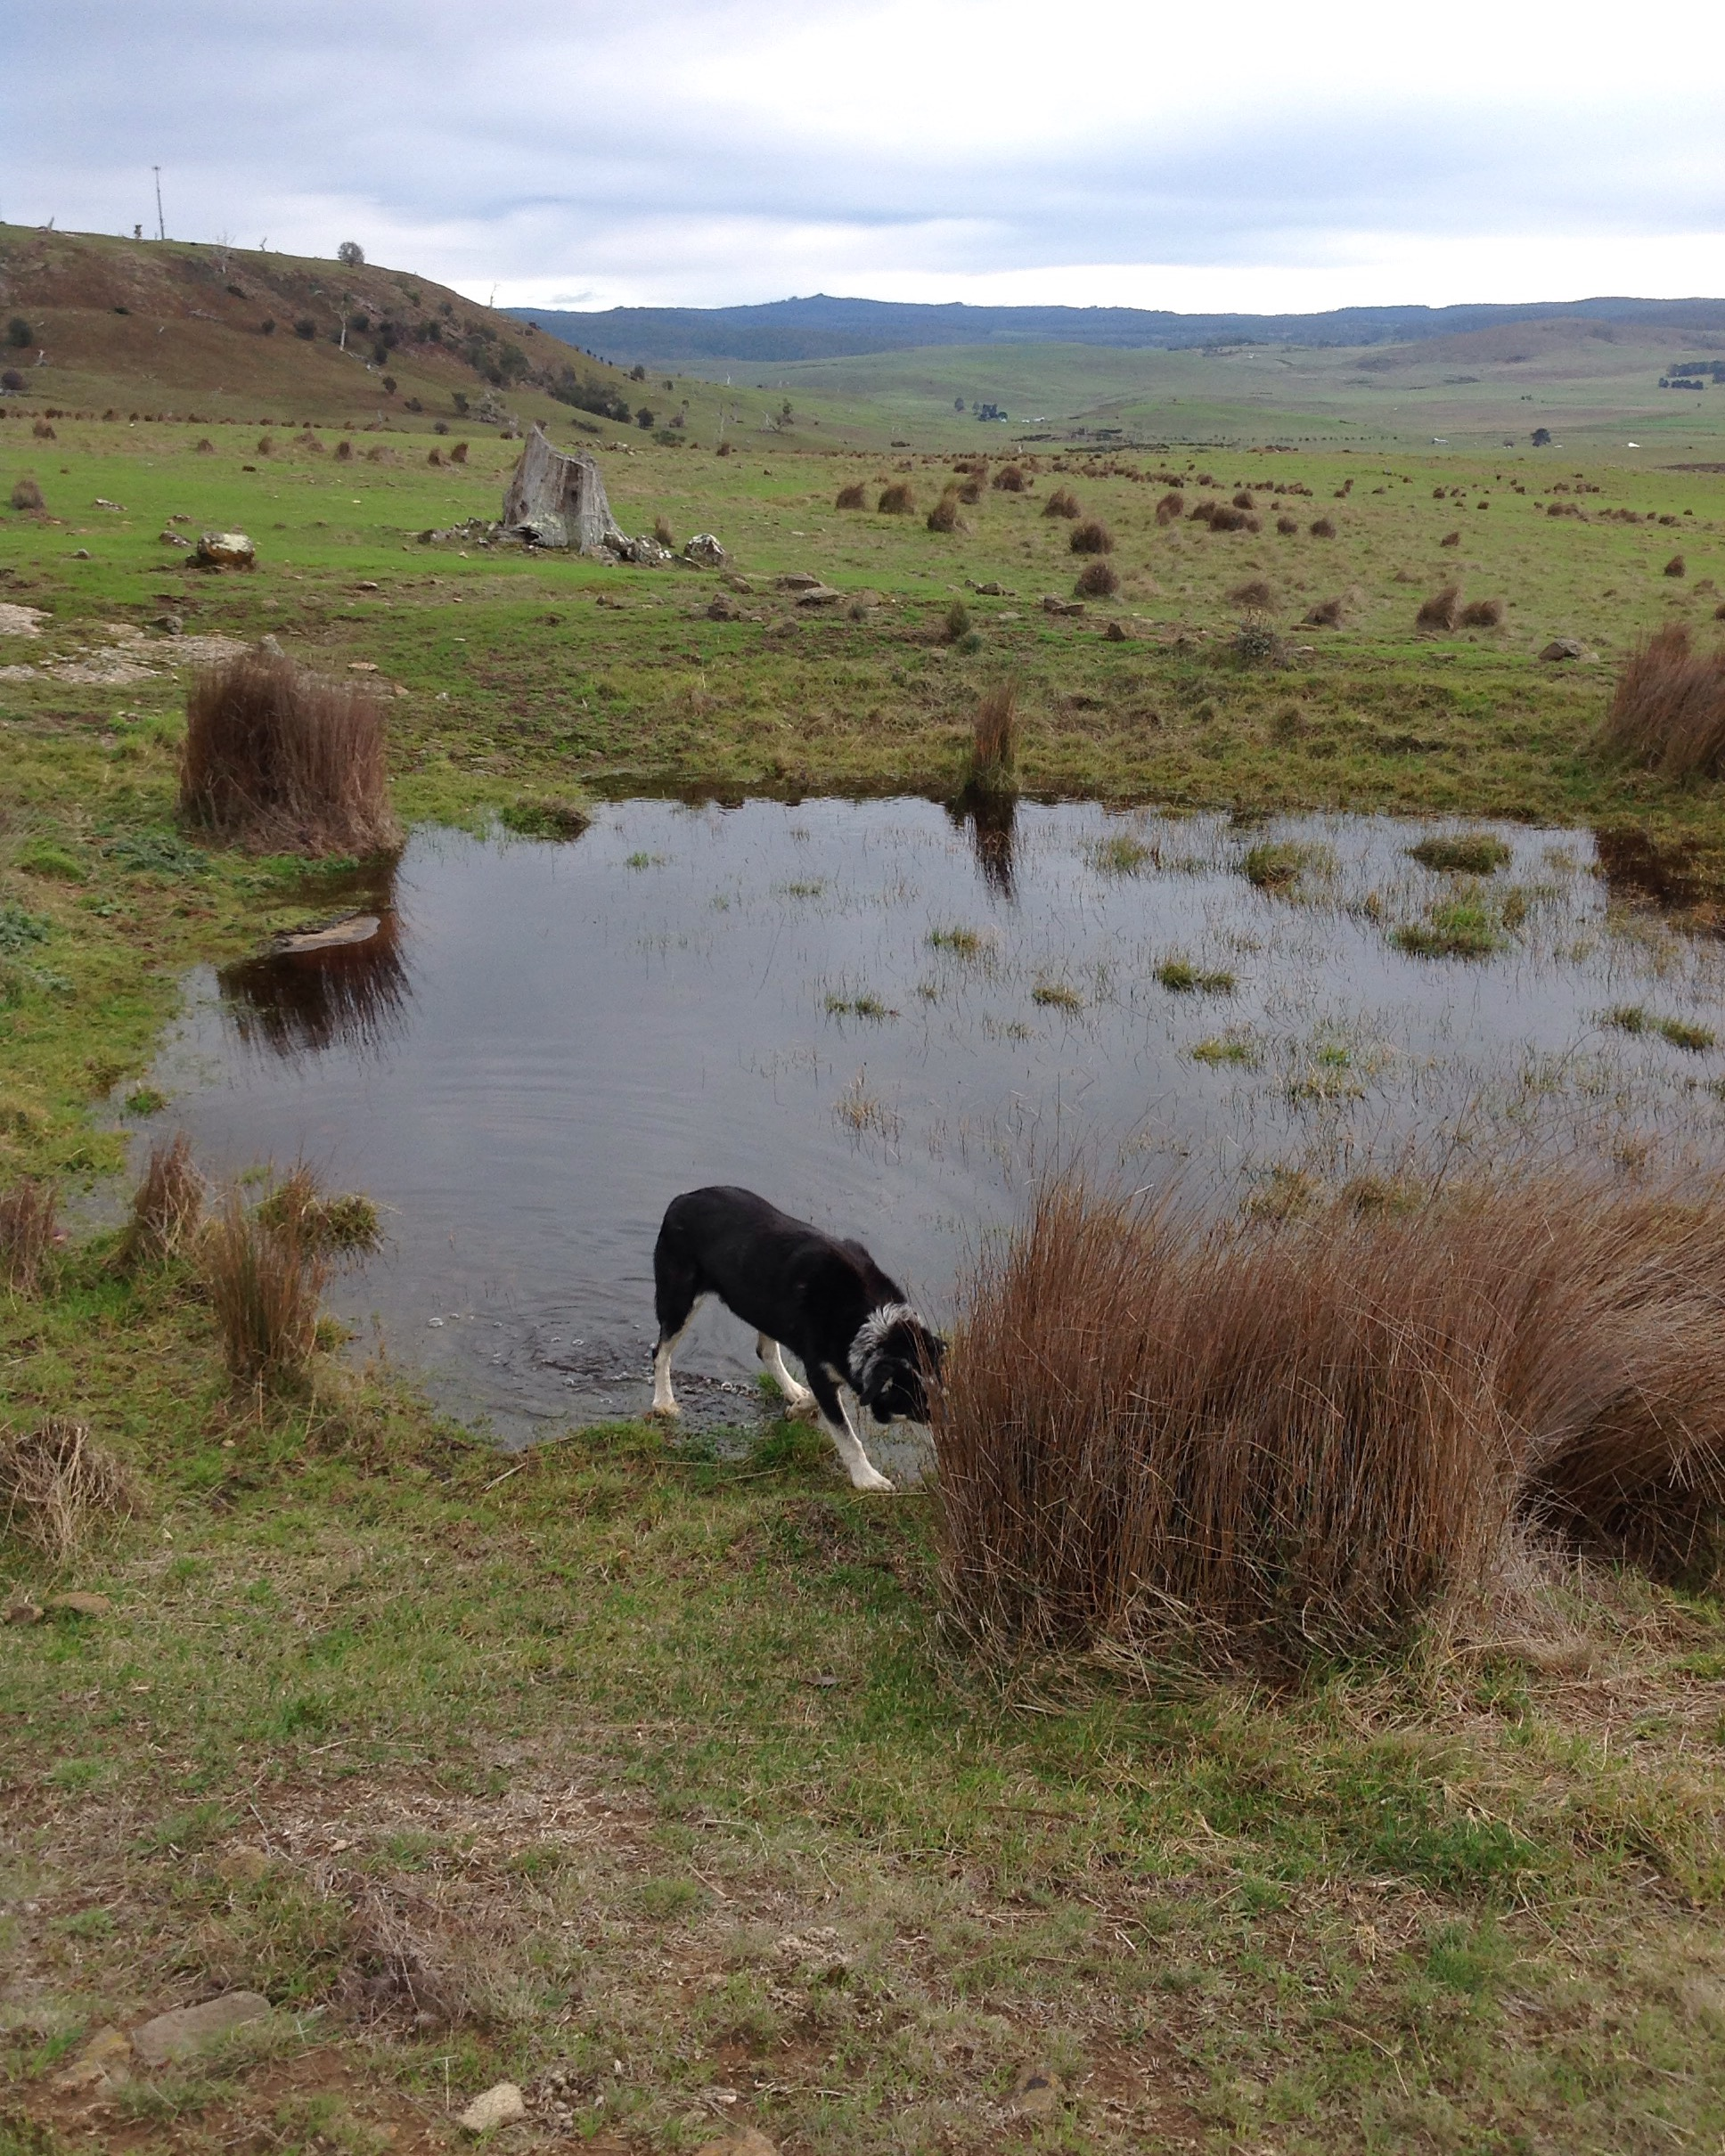 There hasn't been water in this little spring for months. It's lovely to see it fill up–if it keeps raining, it might even overflow!